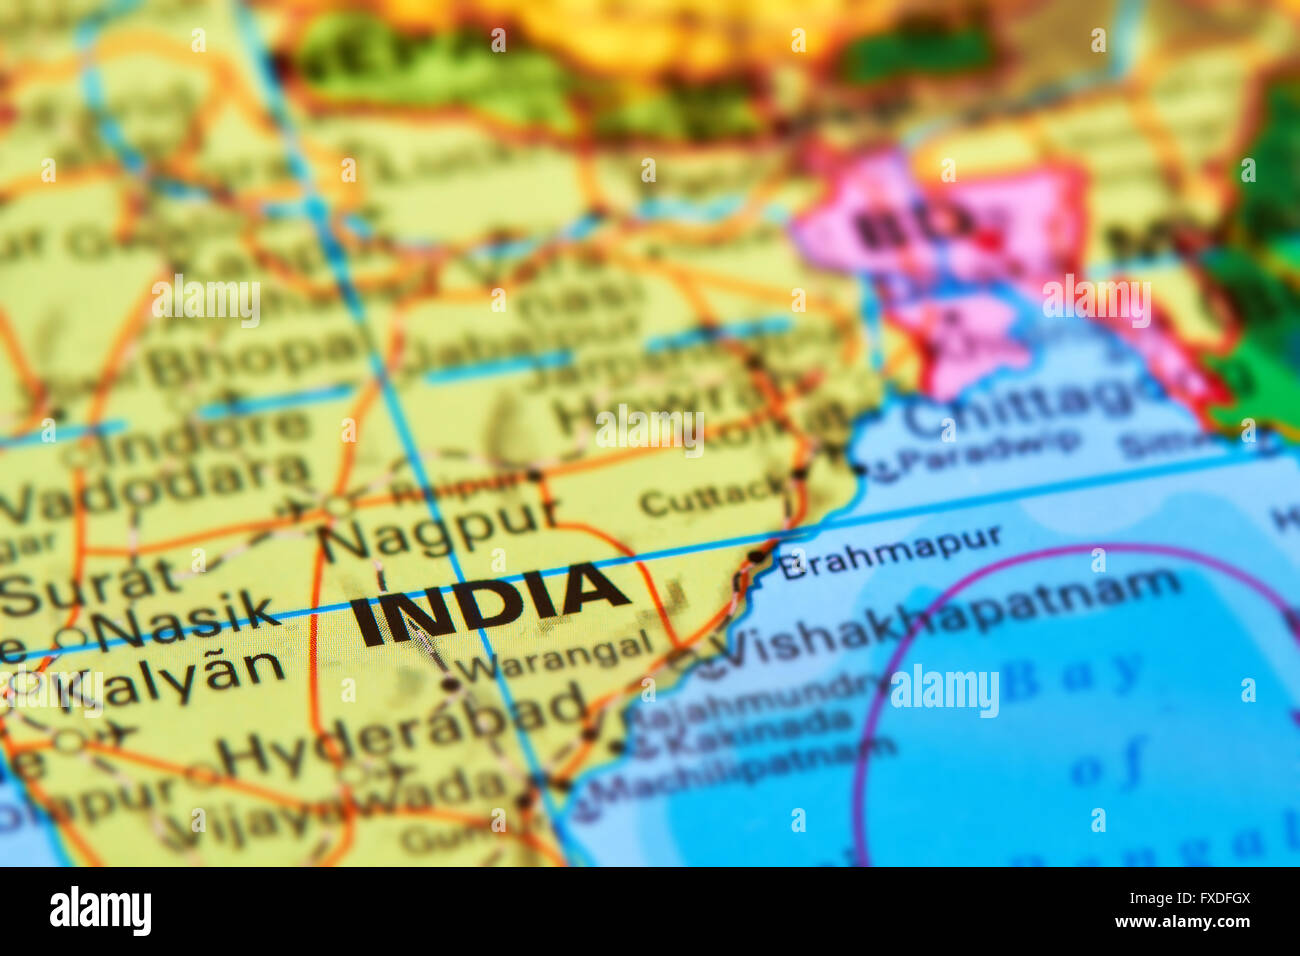 India country map stock photos india country map stock images alamy india large asian country on the world map stock image gumiabroncs Gallery